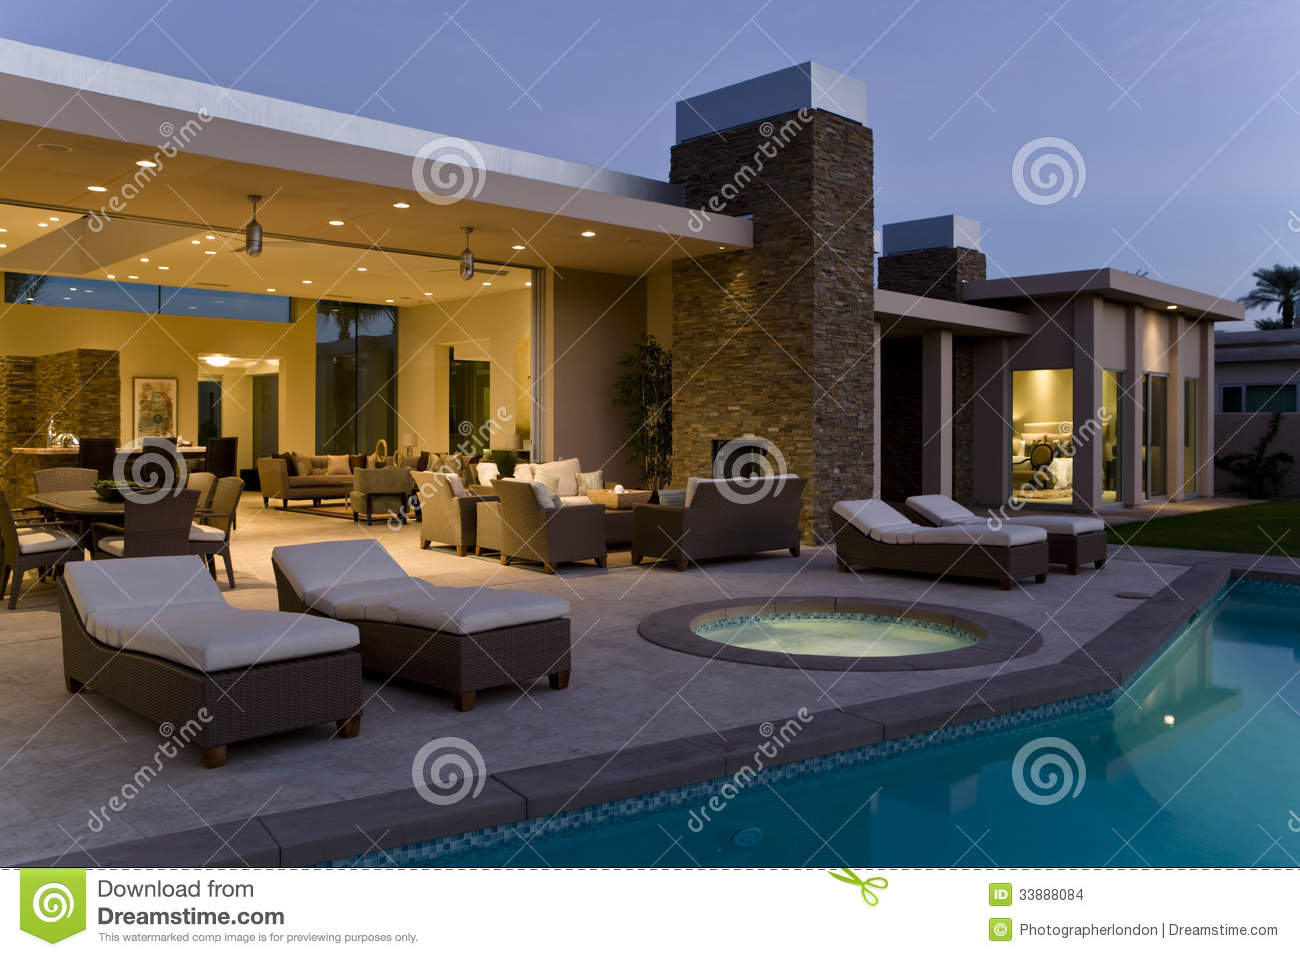 patio with pool.  Pool House With Sunloungers On Patio By Pool At Dusk And